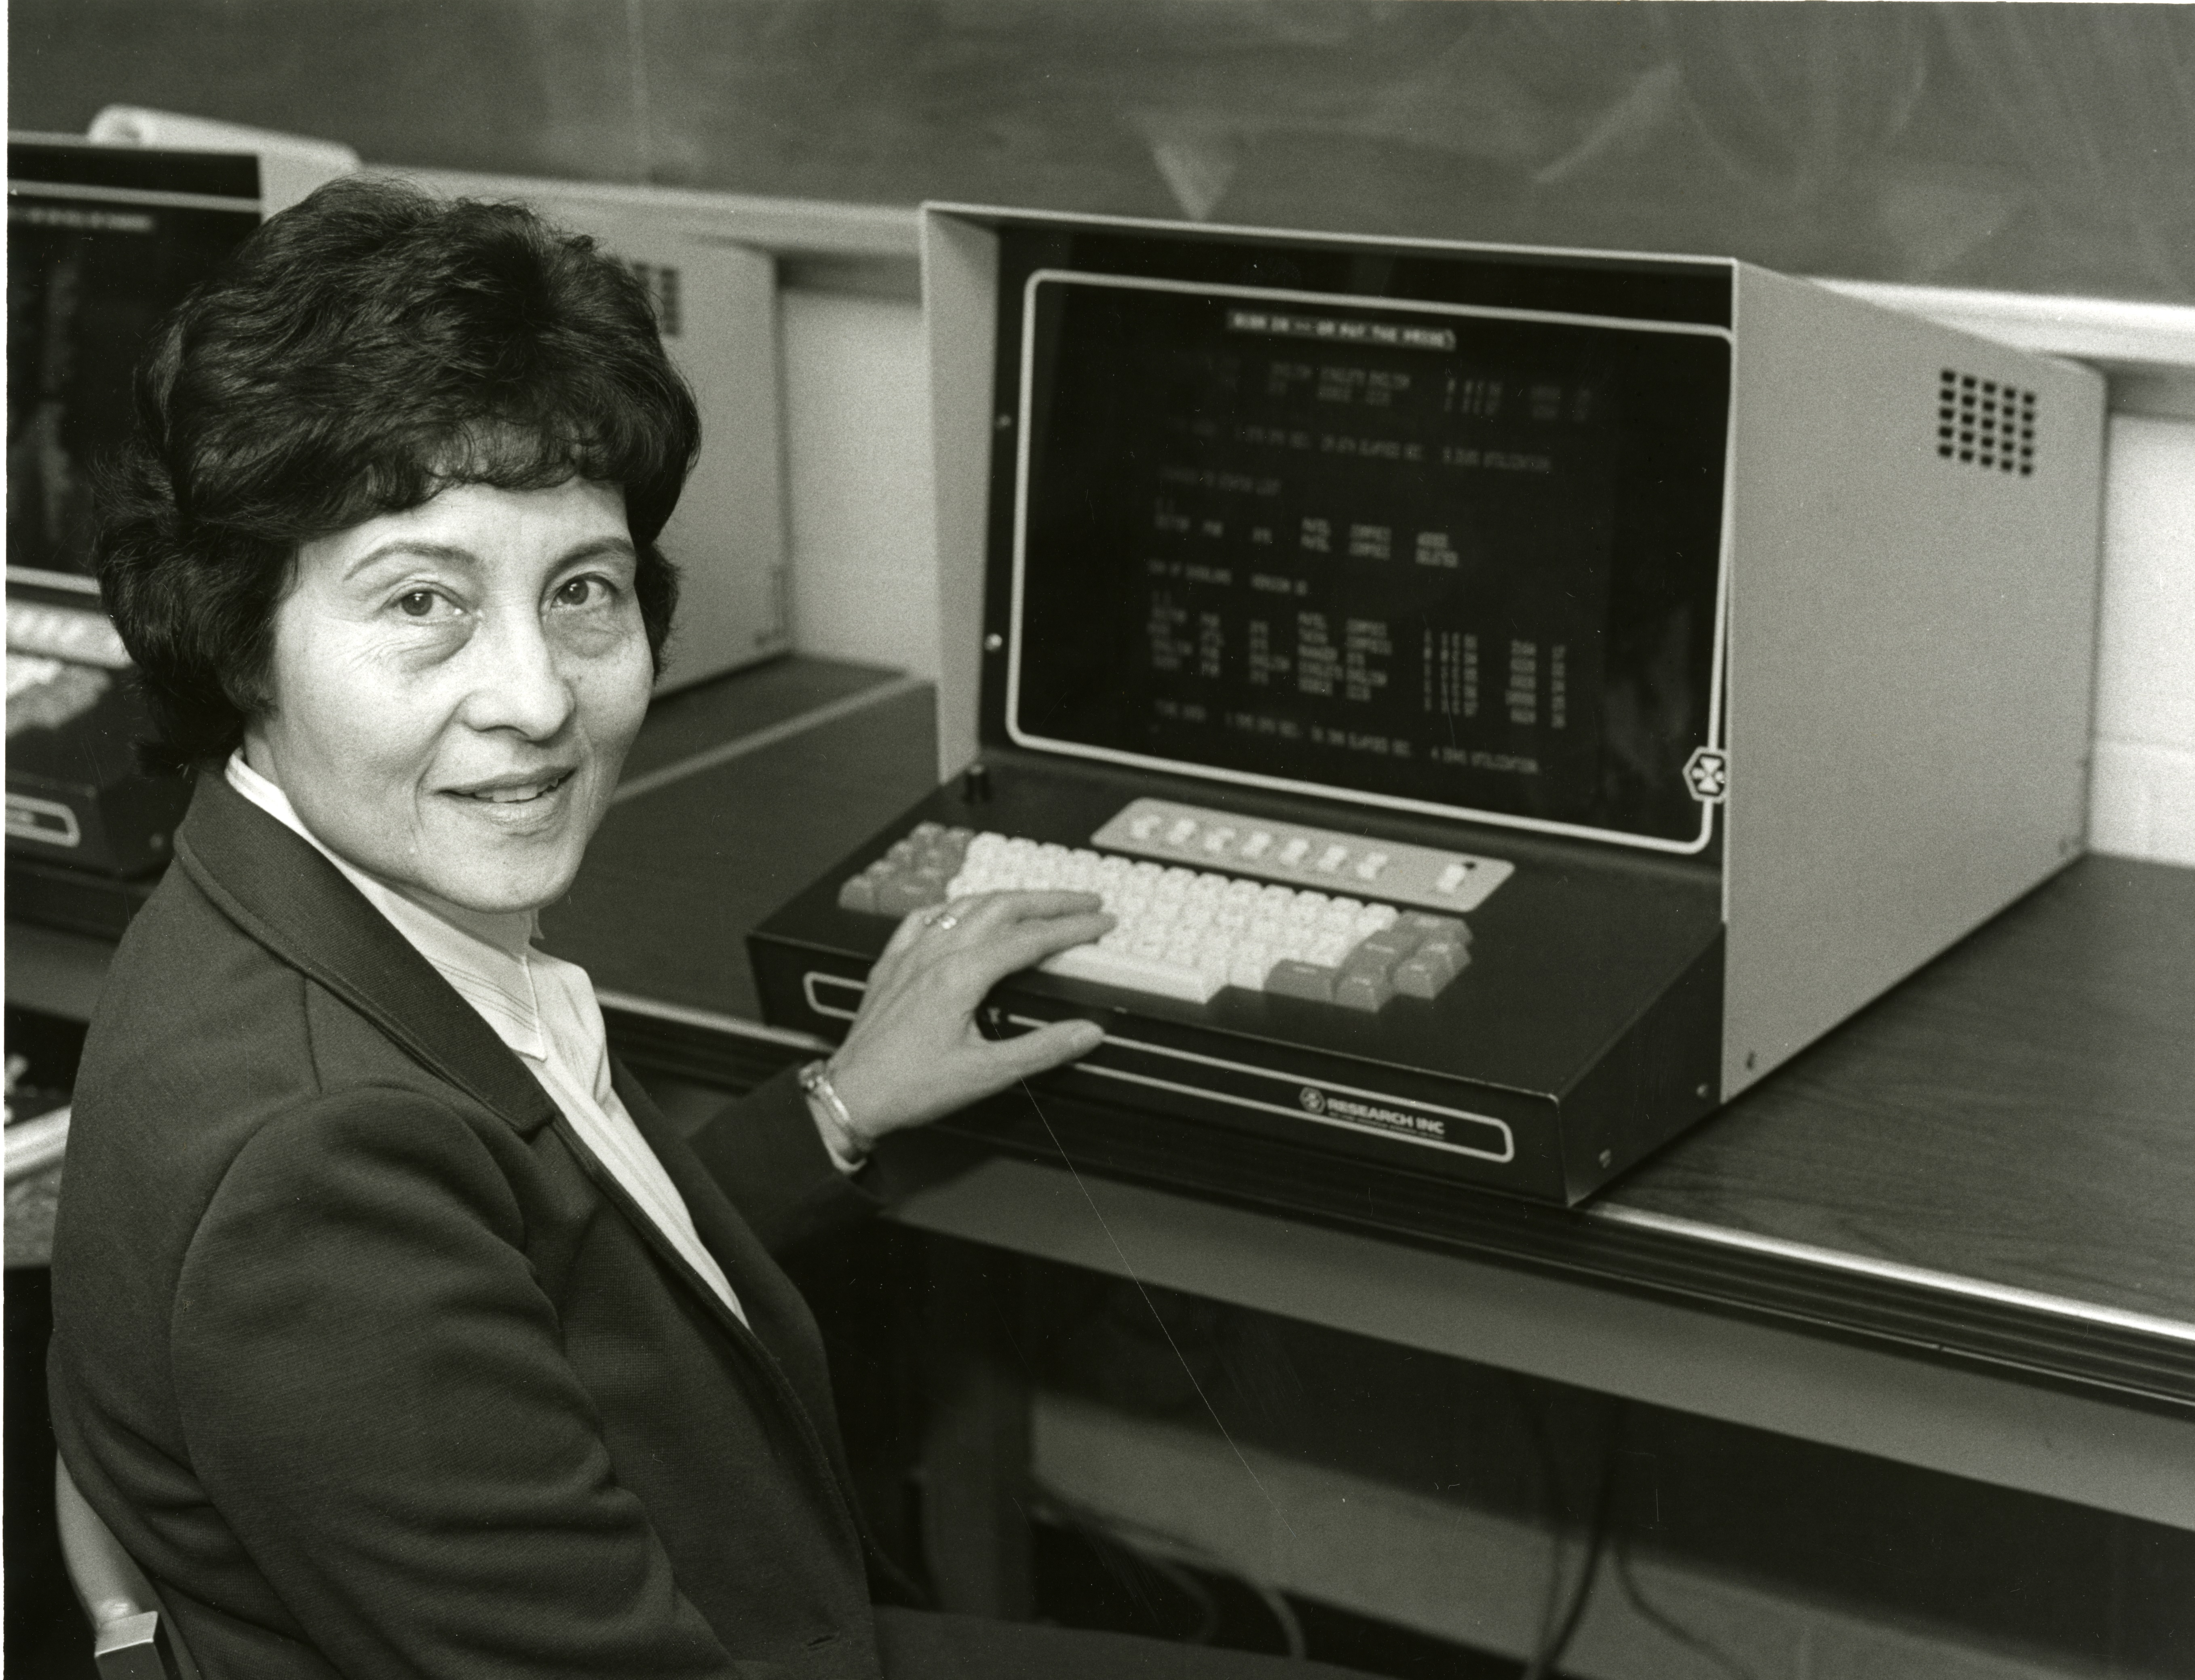 Staff with an early computer, circa 1980s.